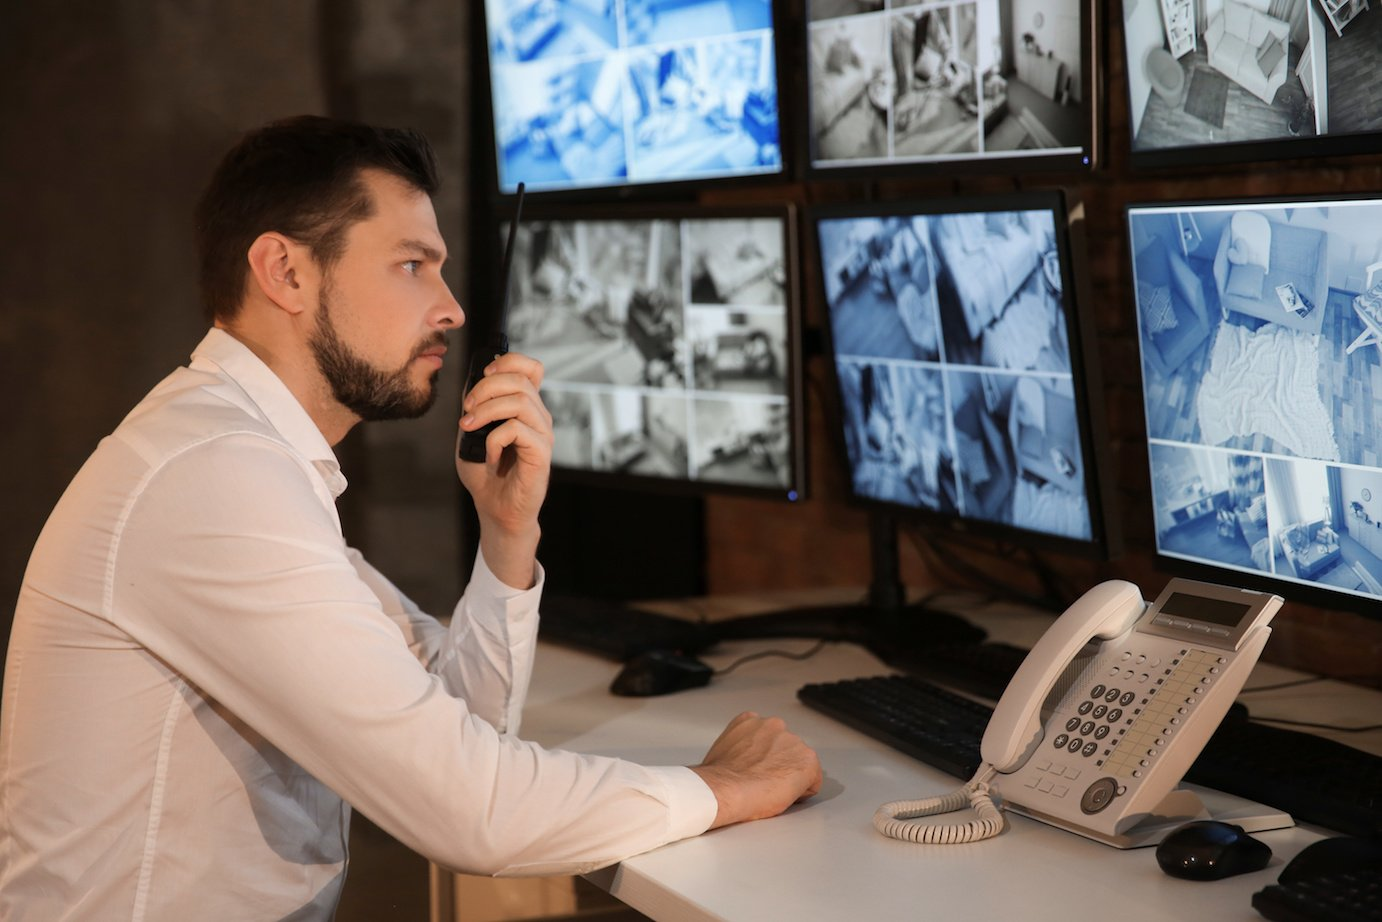 Video-Surveillance-Cameras-TOPS-Ofice-Solutions